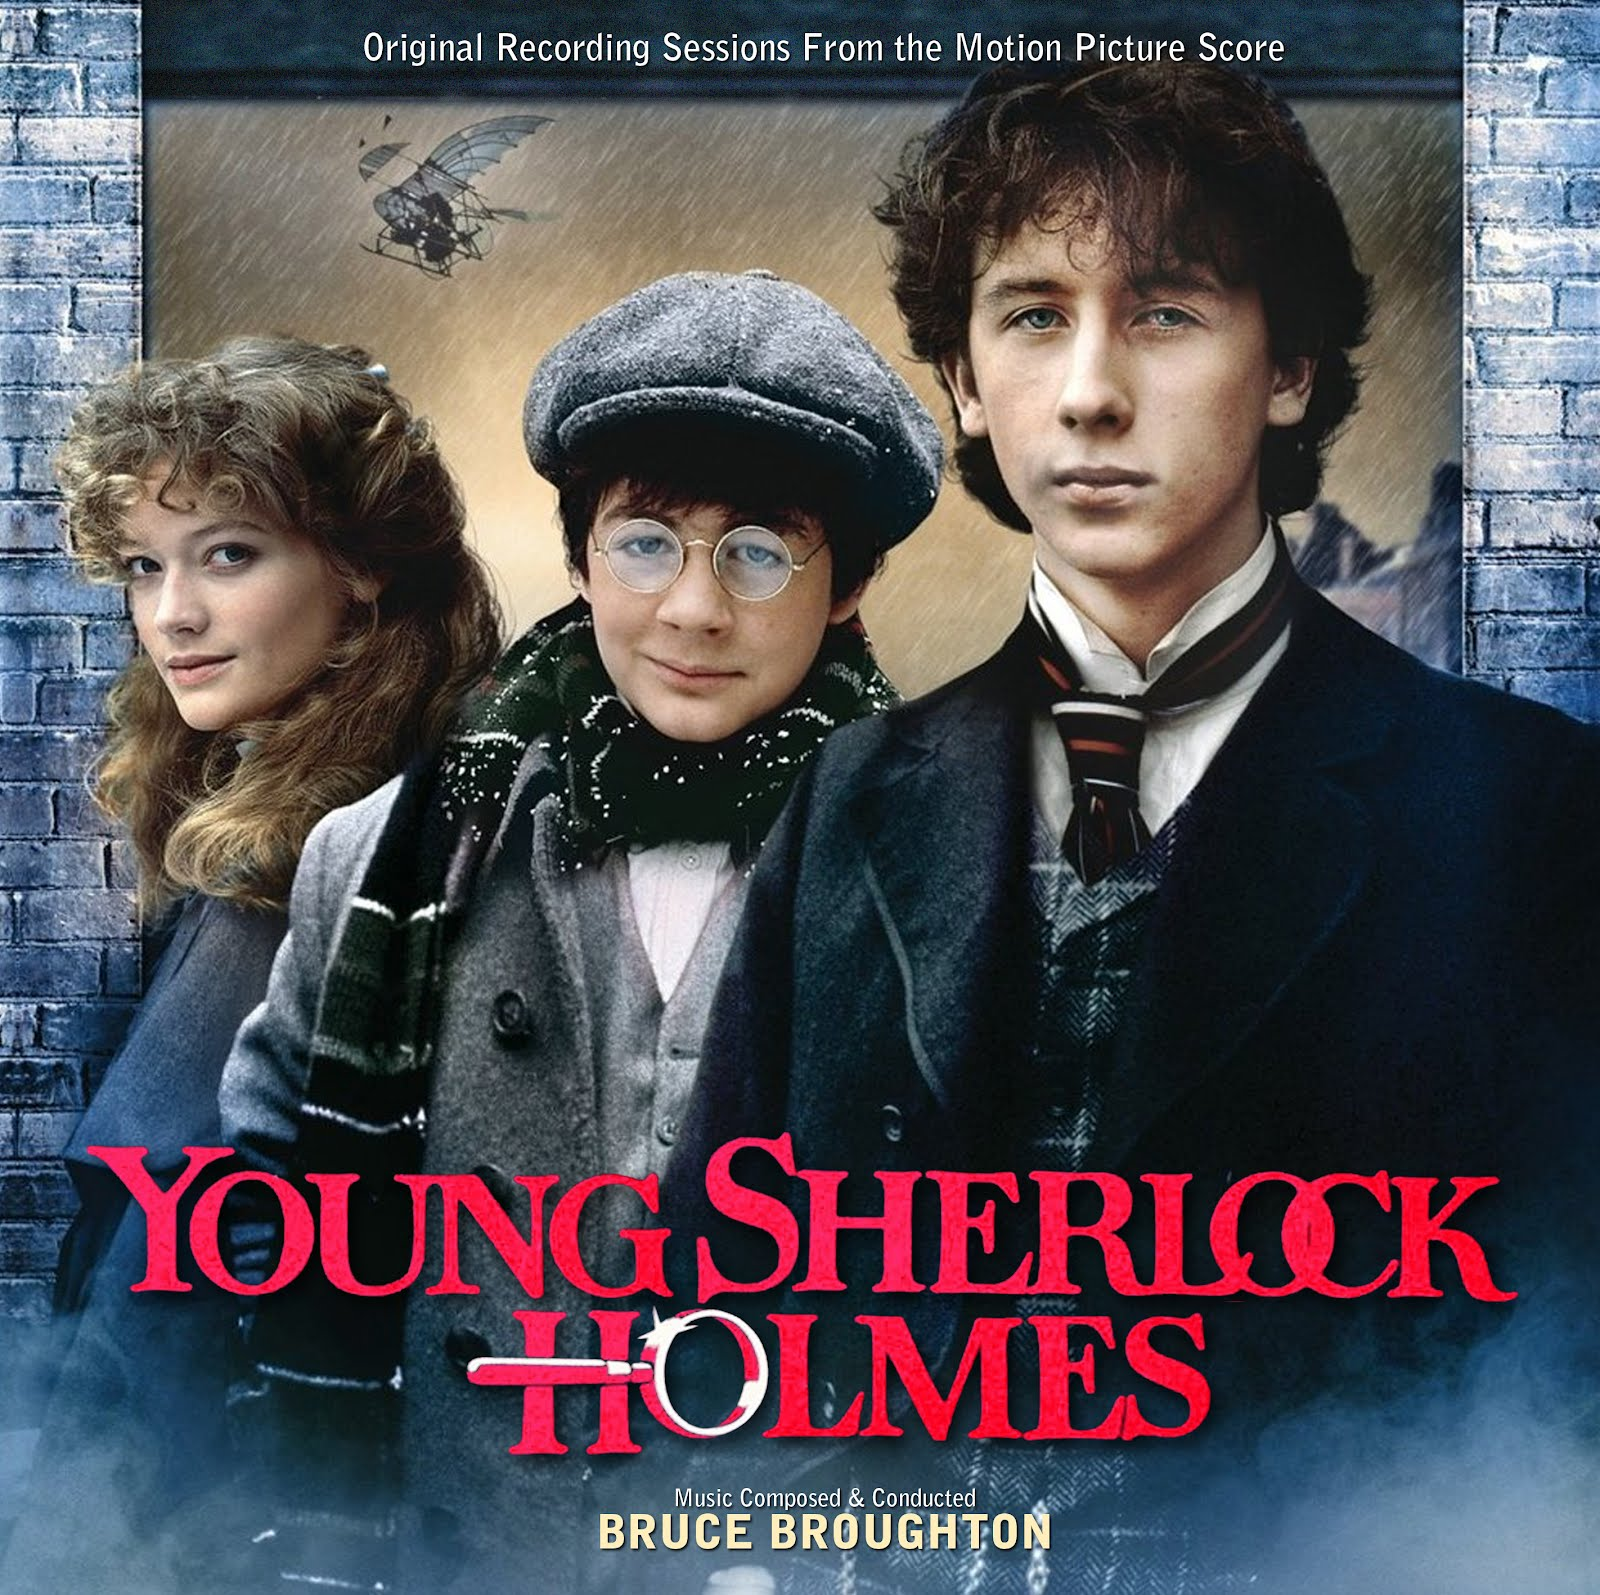 young sherlock holmes Young sherlock holmes (also known with the title card name of pyramid of fear) is a 1985 american mystery adventure film directed by barry levinson and written by chris columbus, based on the characters created by sir arthur conan doyle.